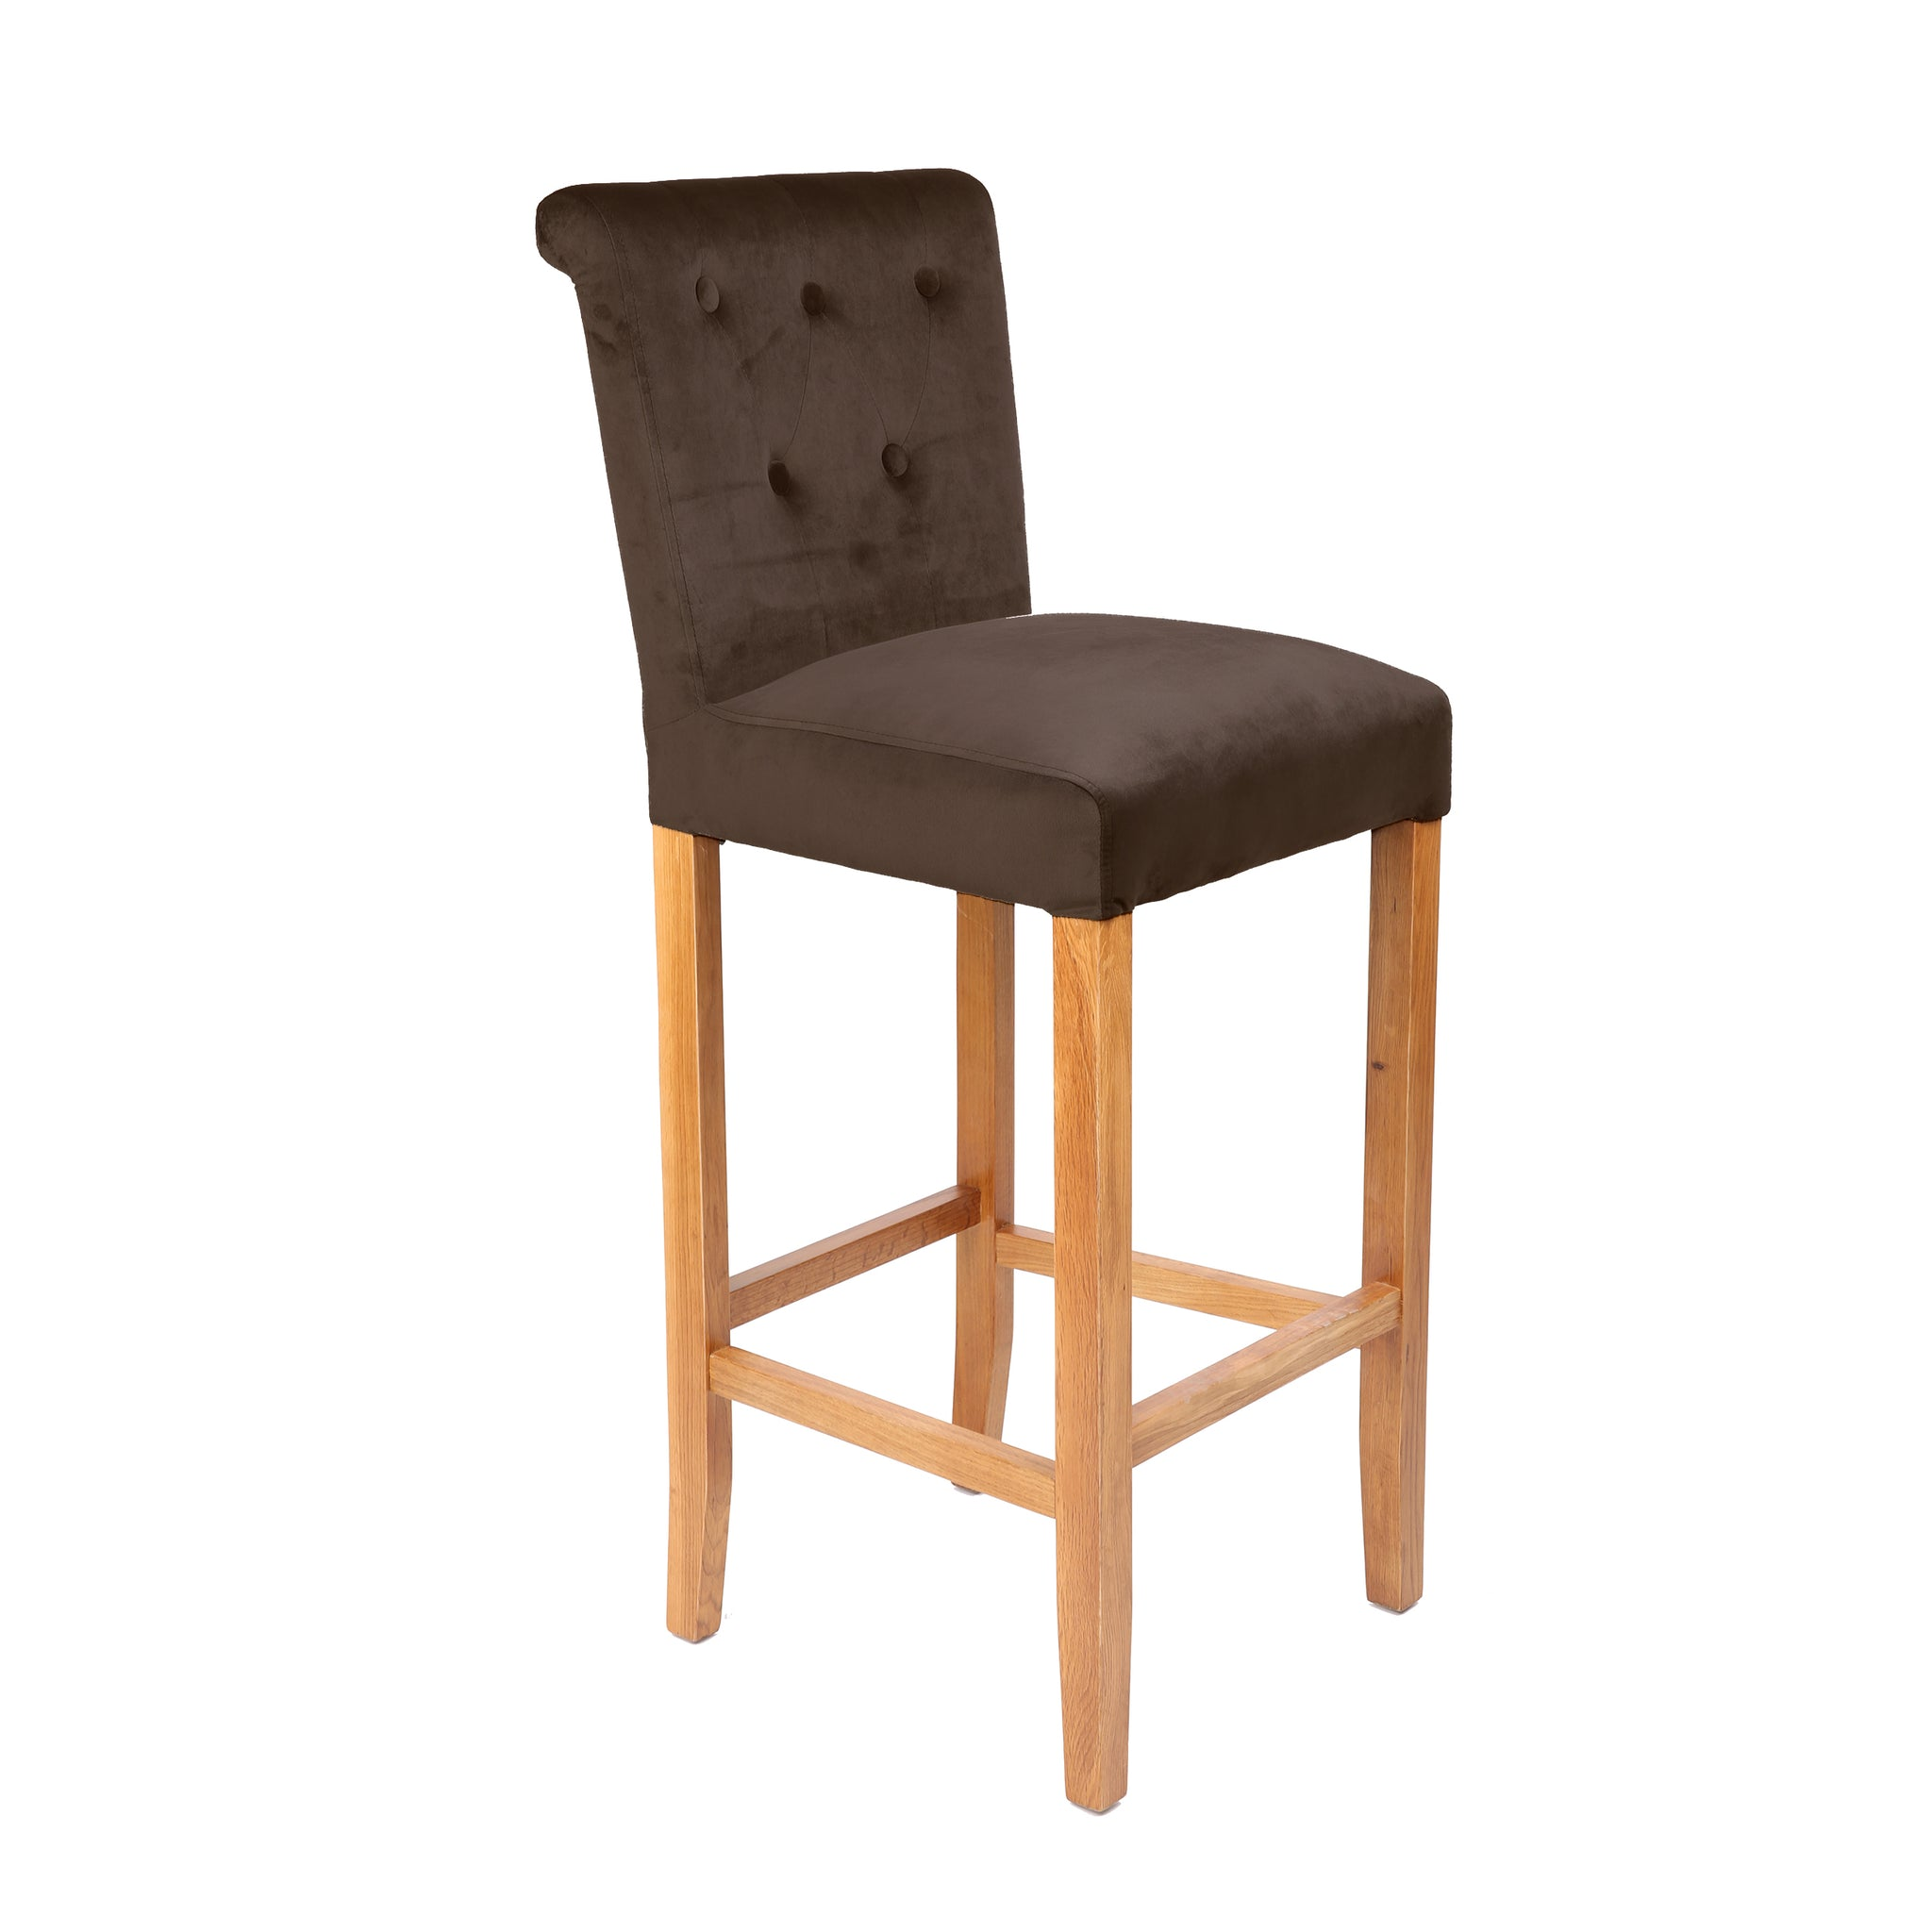 Incredible Luxury Brown Suede Bar Stool Homeplus Furniture Gmtry Best Dining Table And Chair Ideas Images Gmtryco